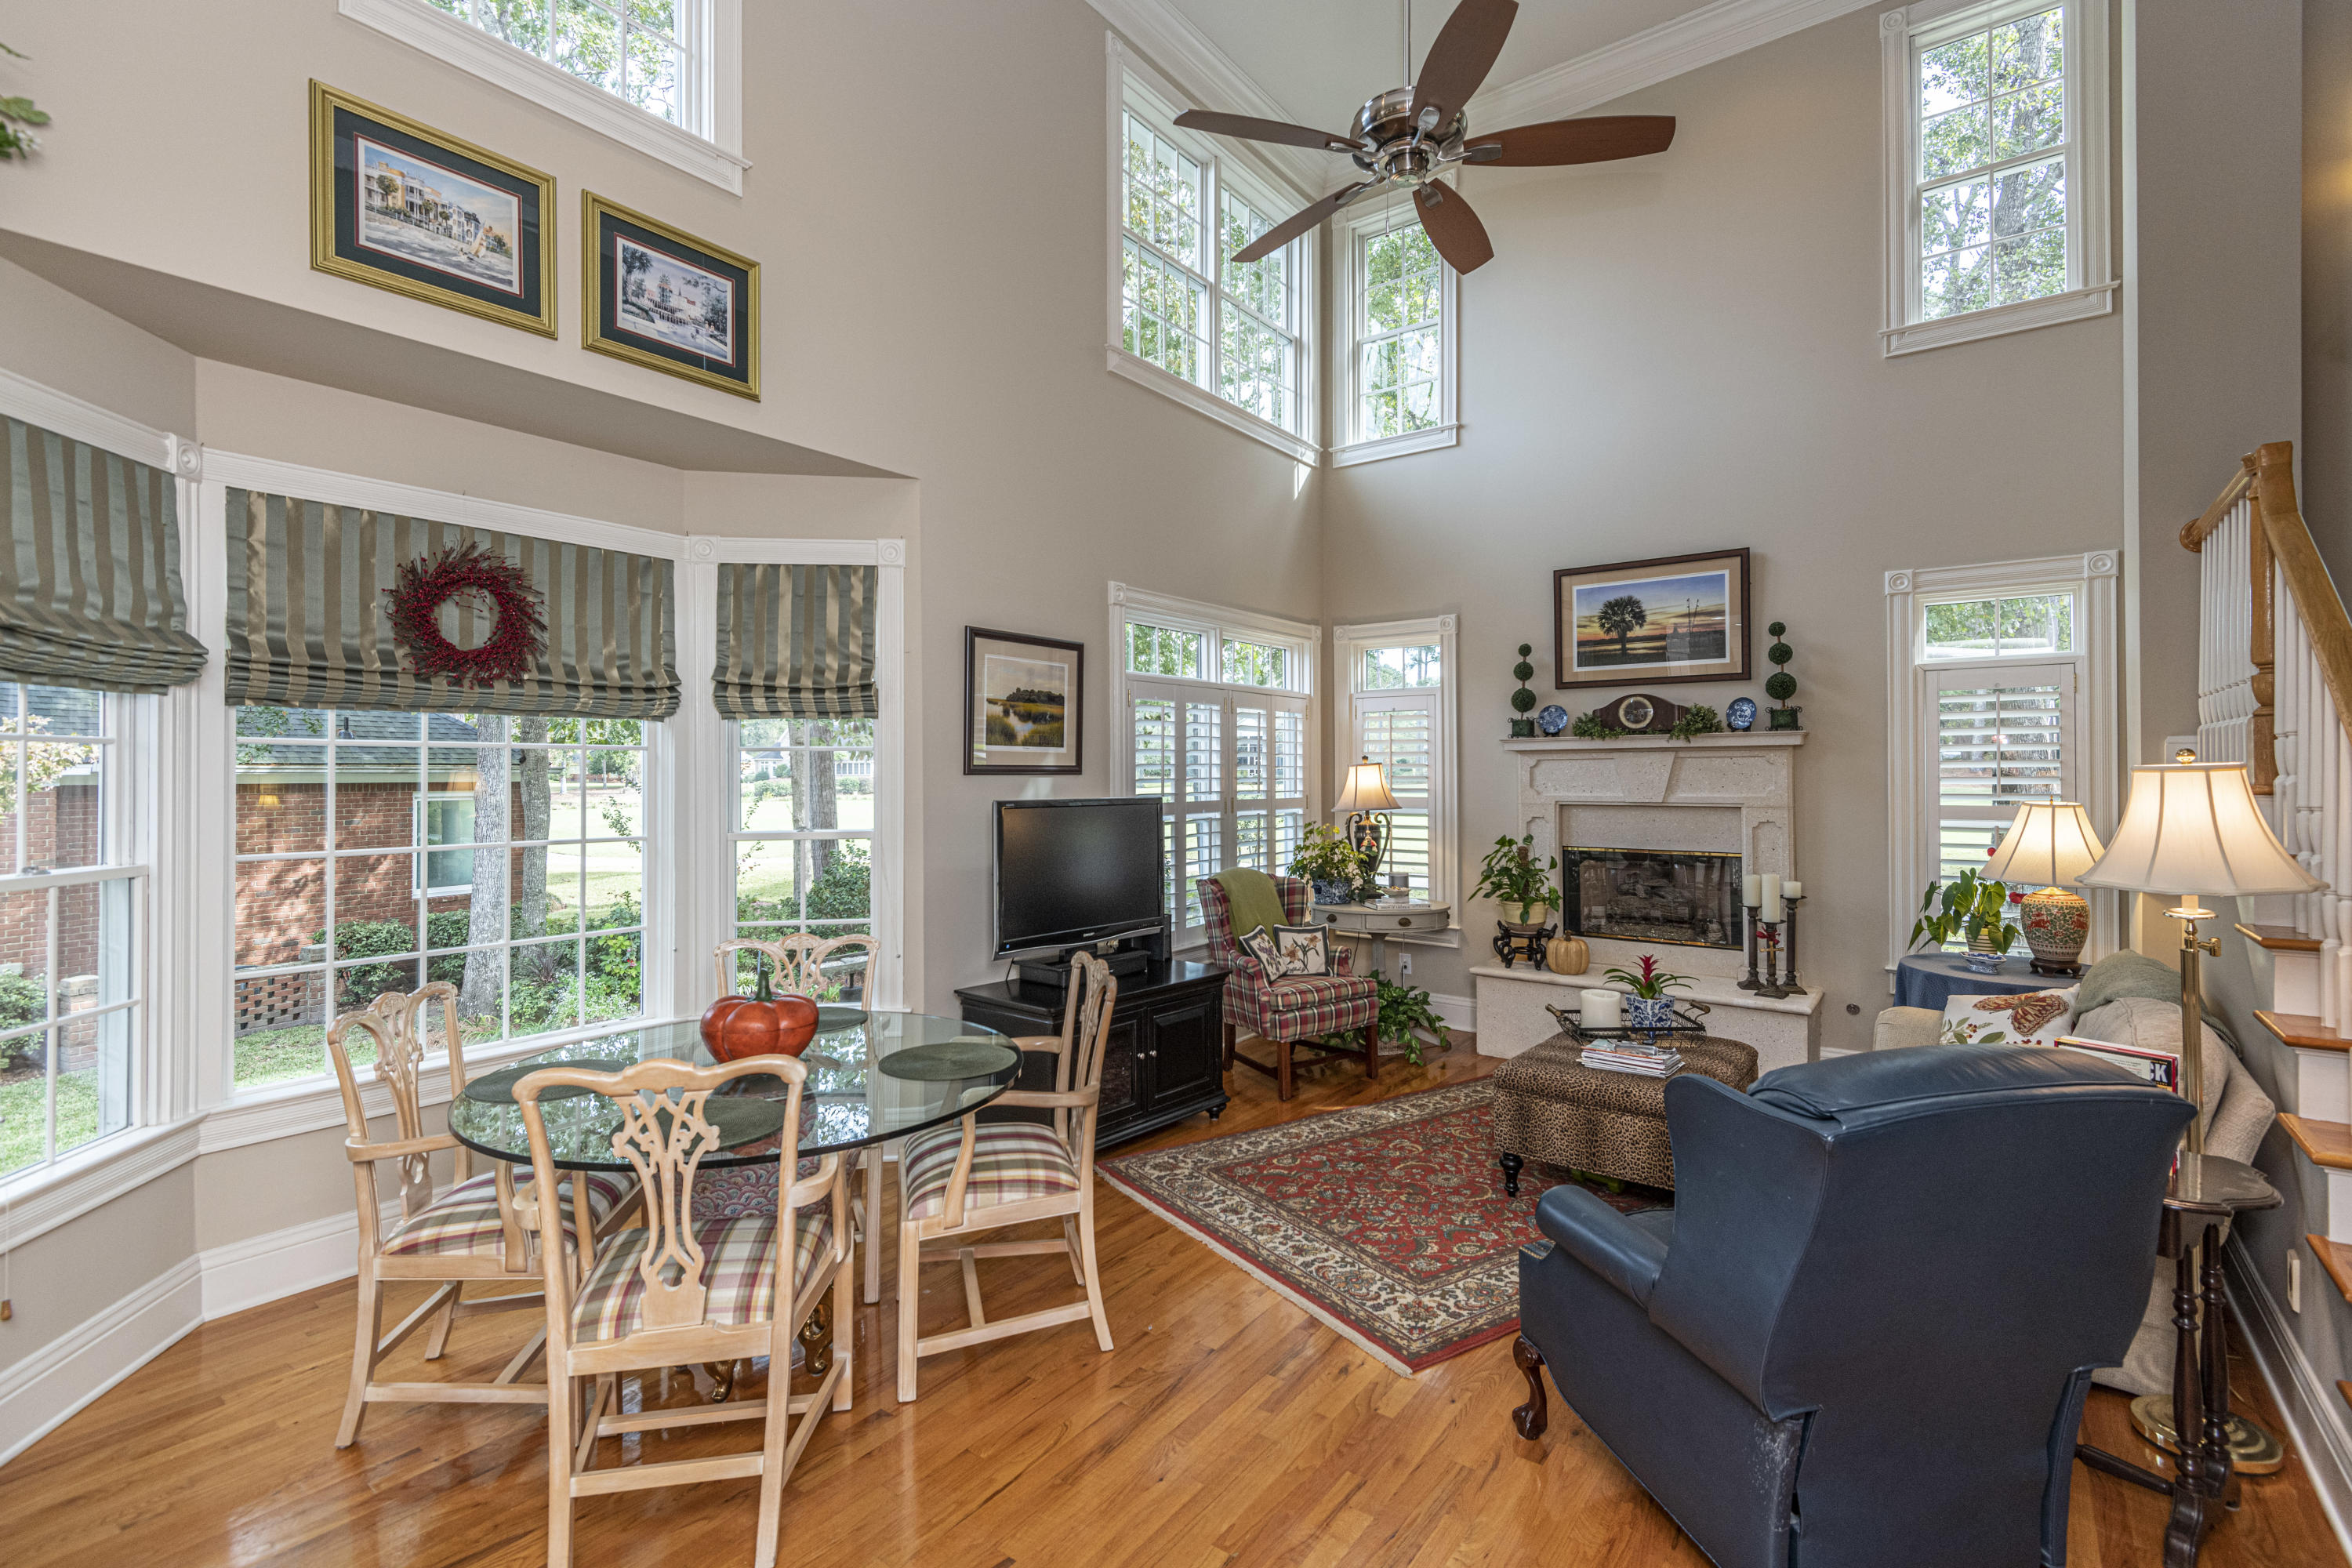 Coosaw Creek Country Club Homes For Sale - 8642 Fairway Woods, North Charleston, SC - 29